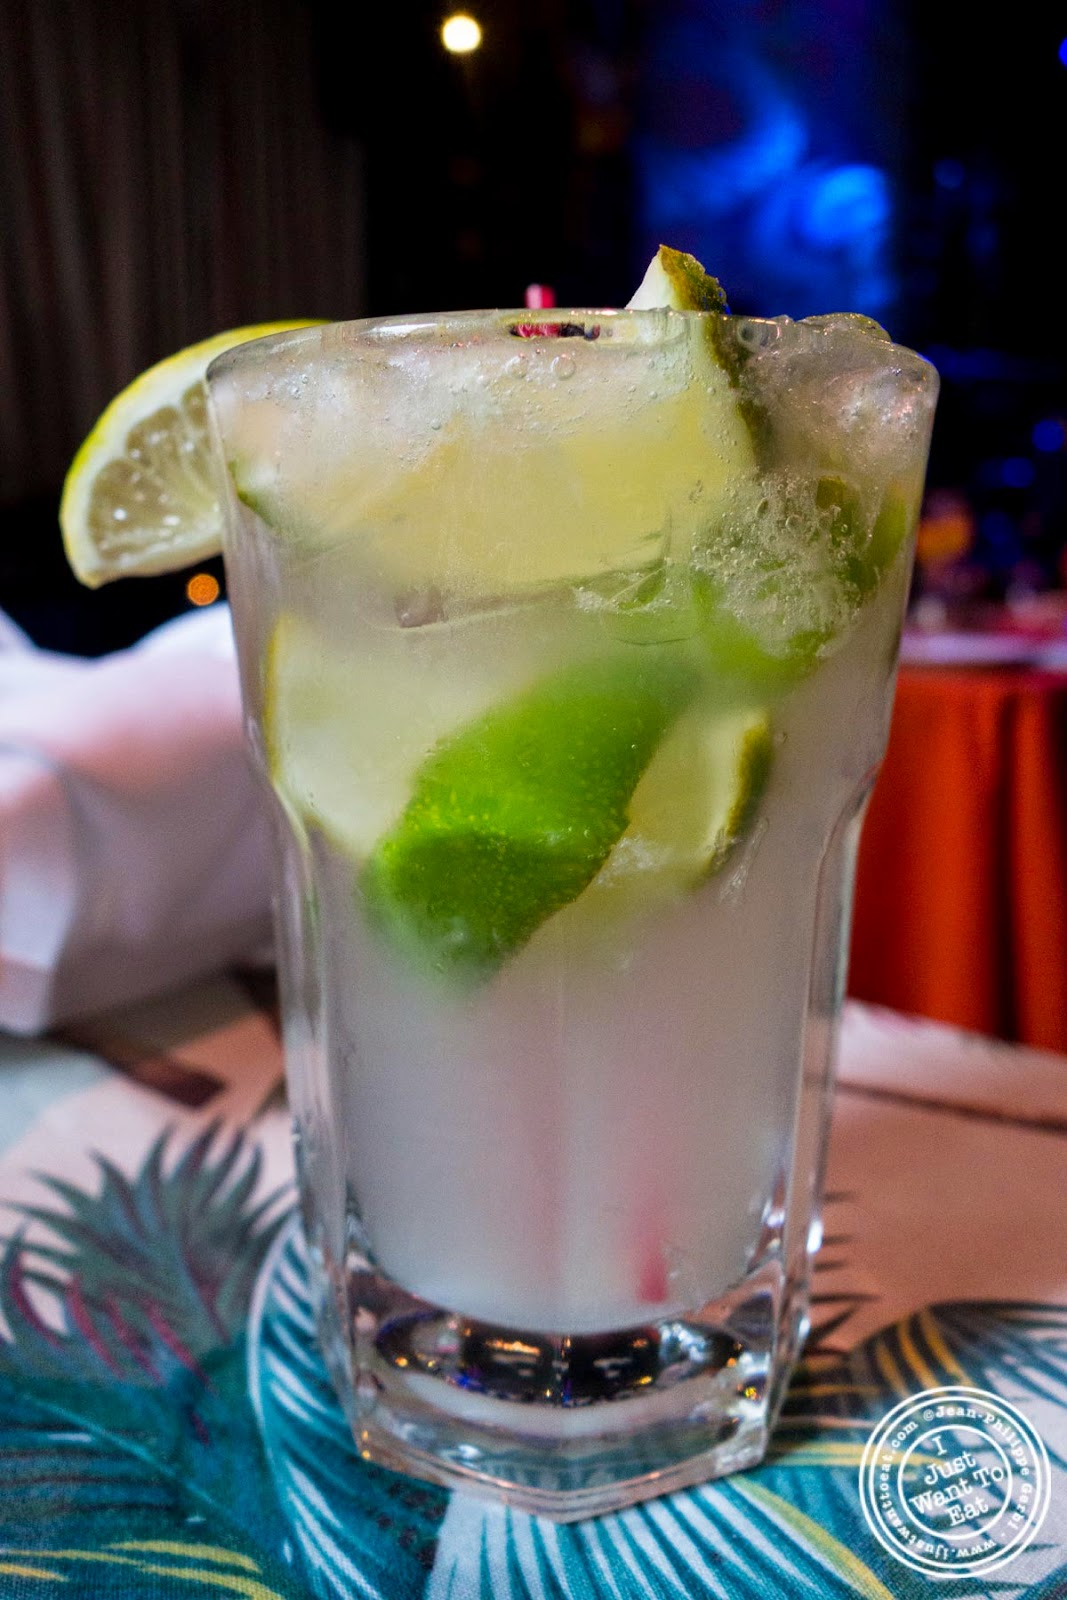 caipirinha at Sounds Of Brazil SOB's in NY, New York